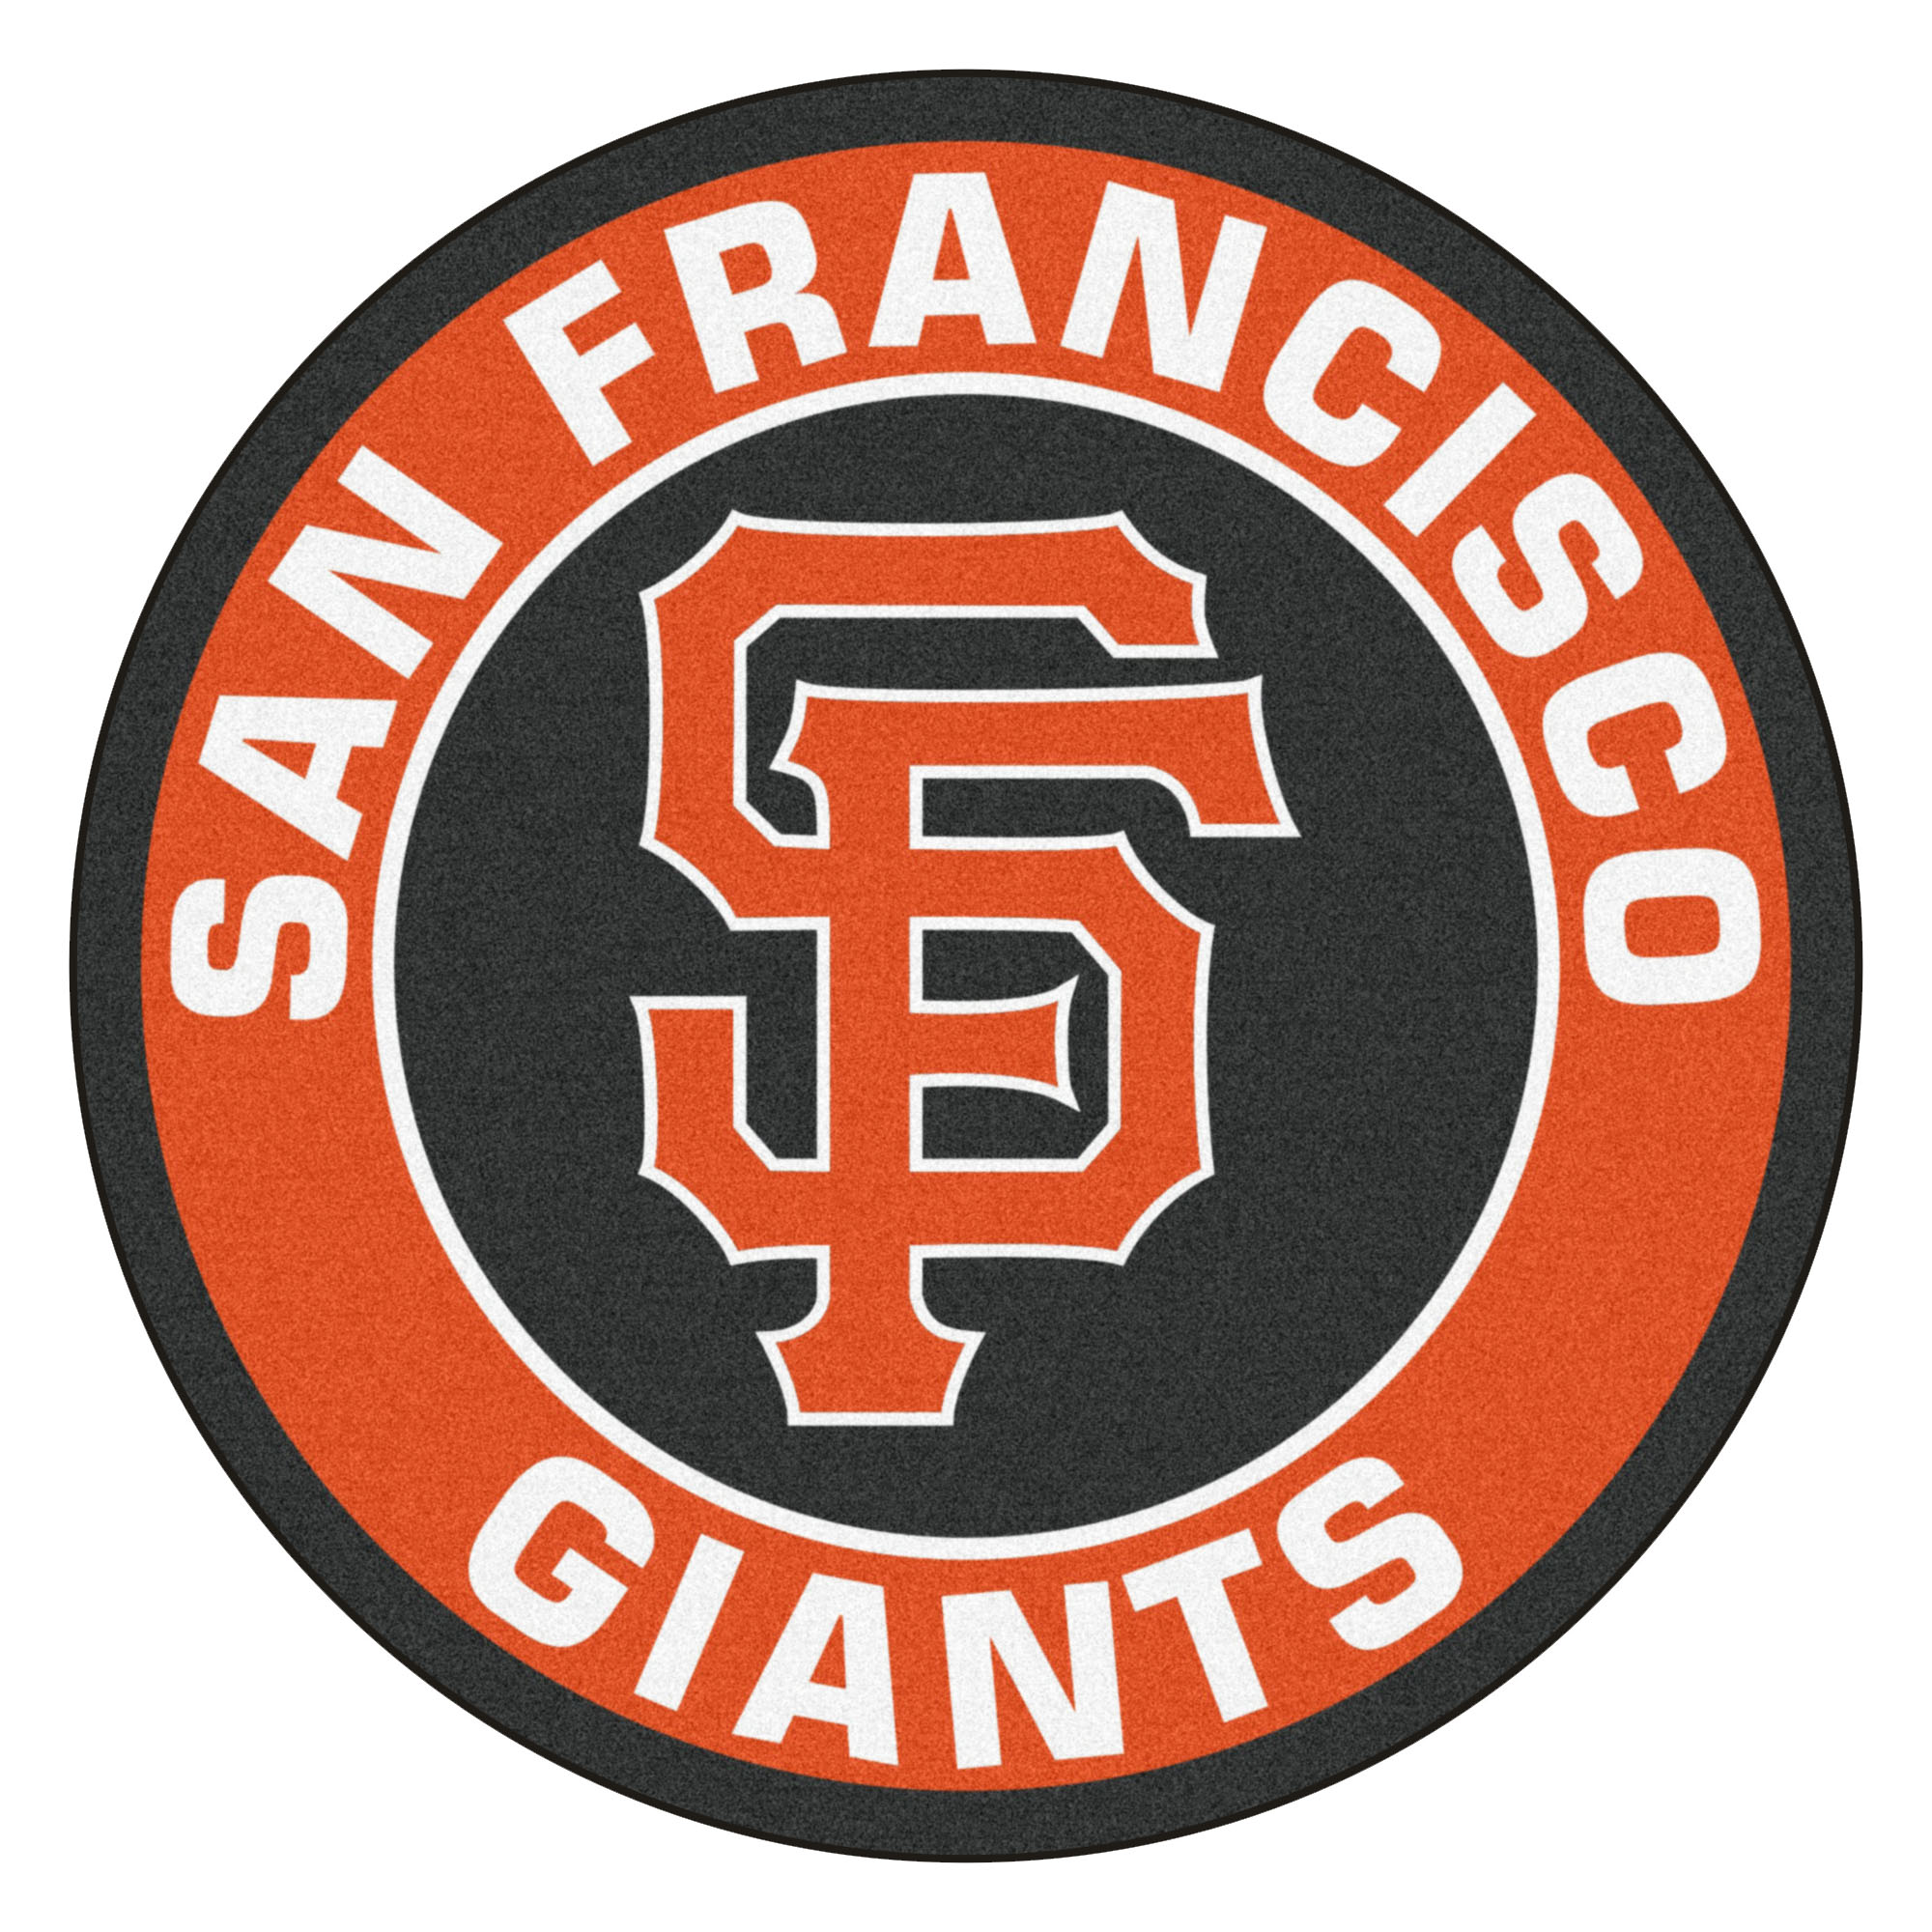 Presale Codes to purchase tickets for San Francisco Giants 2016 Postseason games